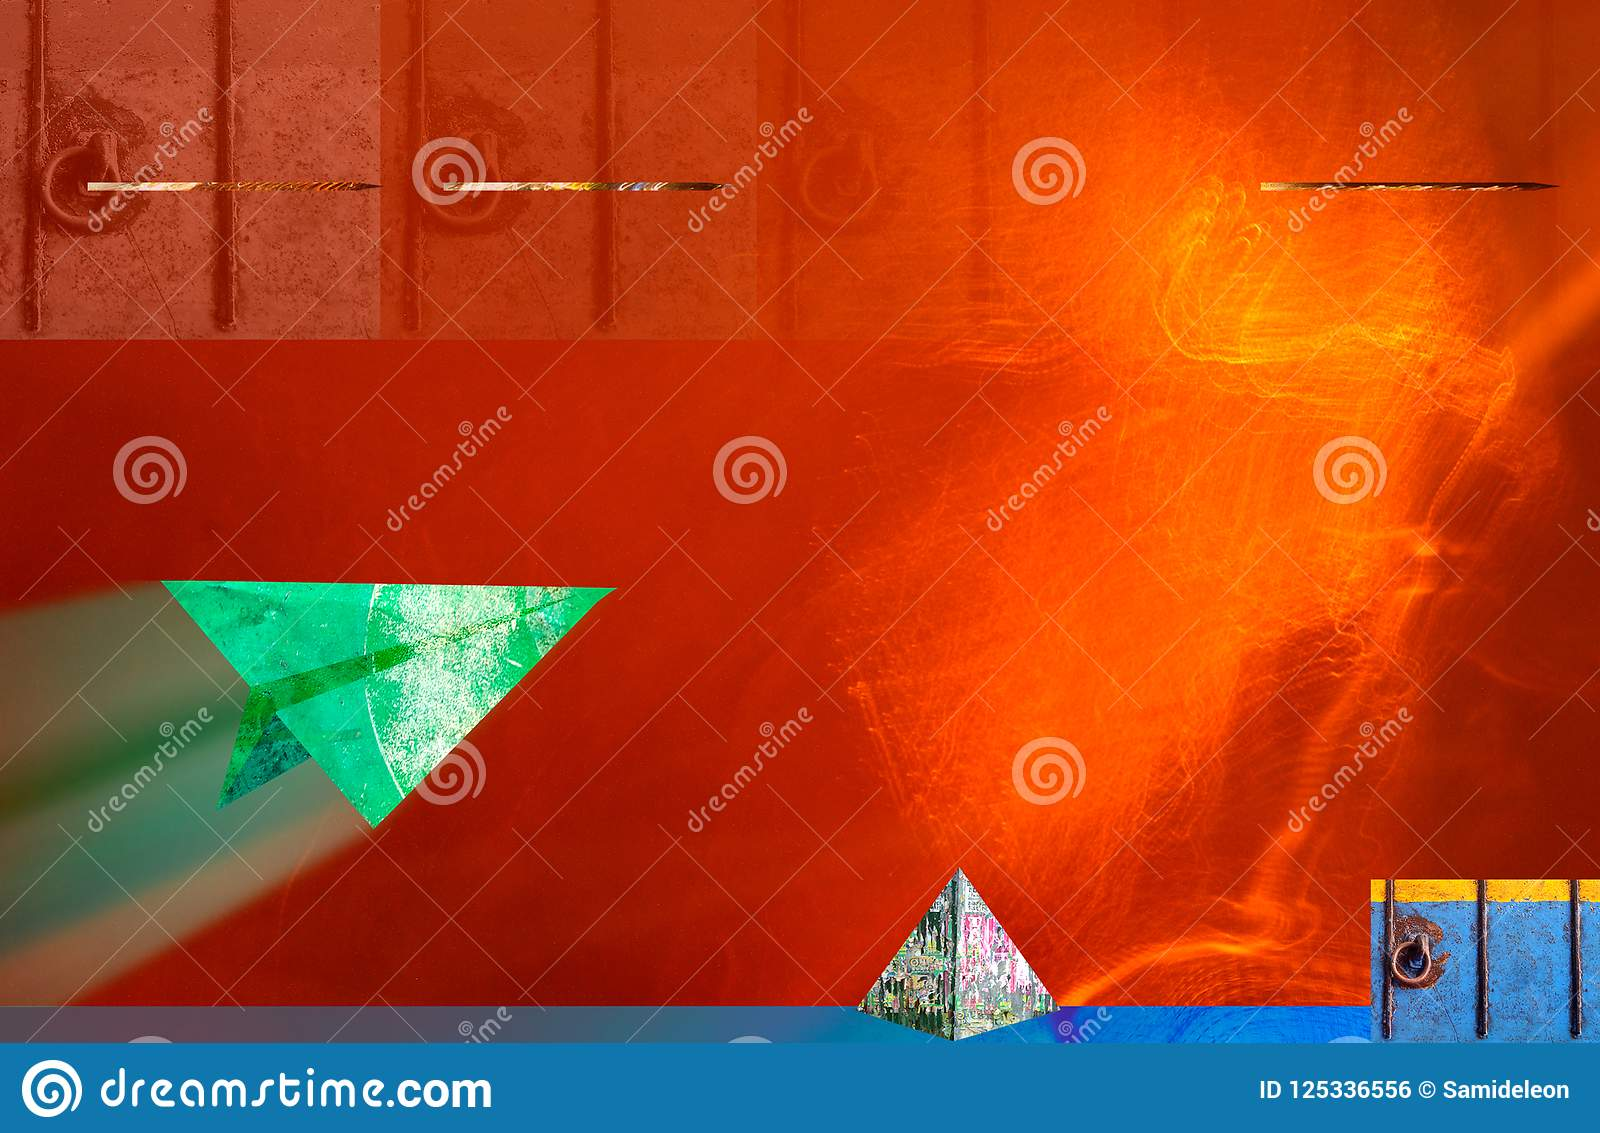 paper airplane diagram of parts pwm wiring for hho systems the flight green plane stock photo image an abstraction and maybe travel using original photographs shaped into objects